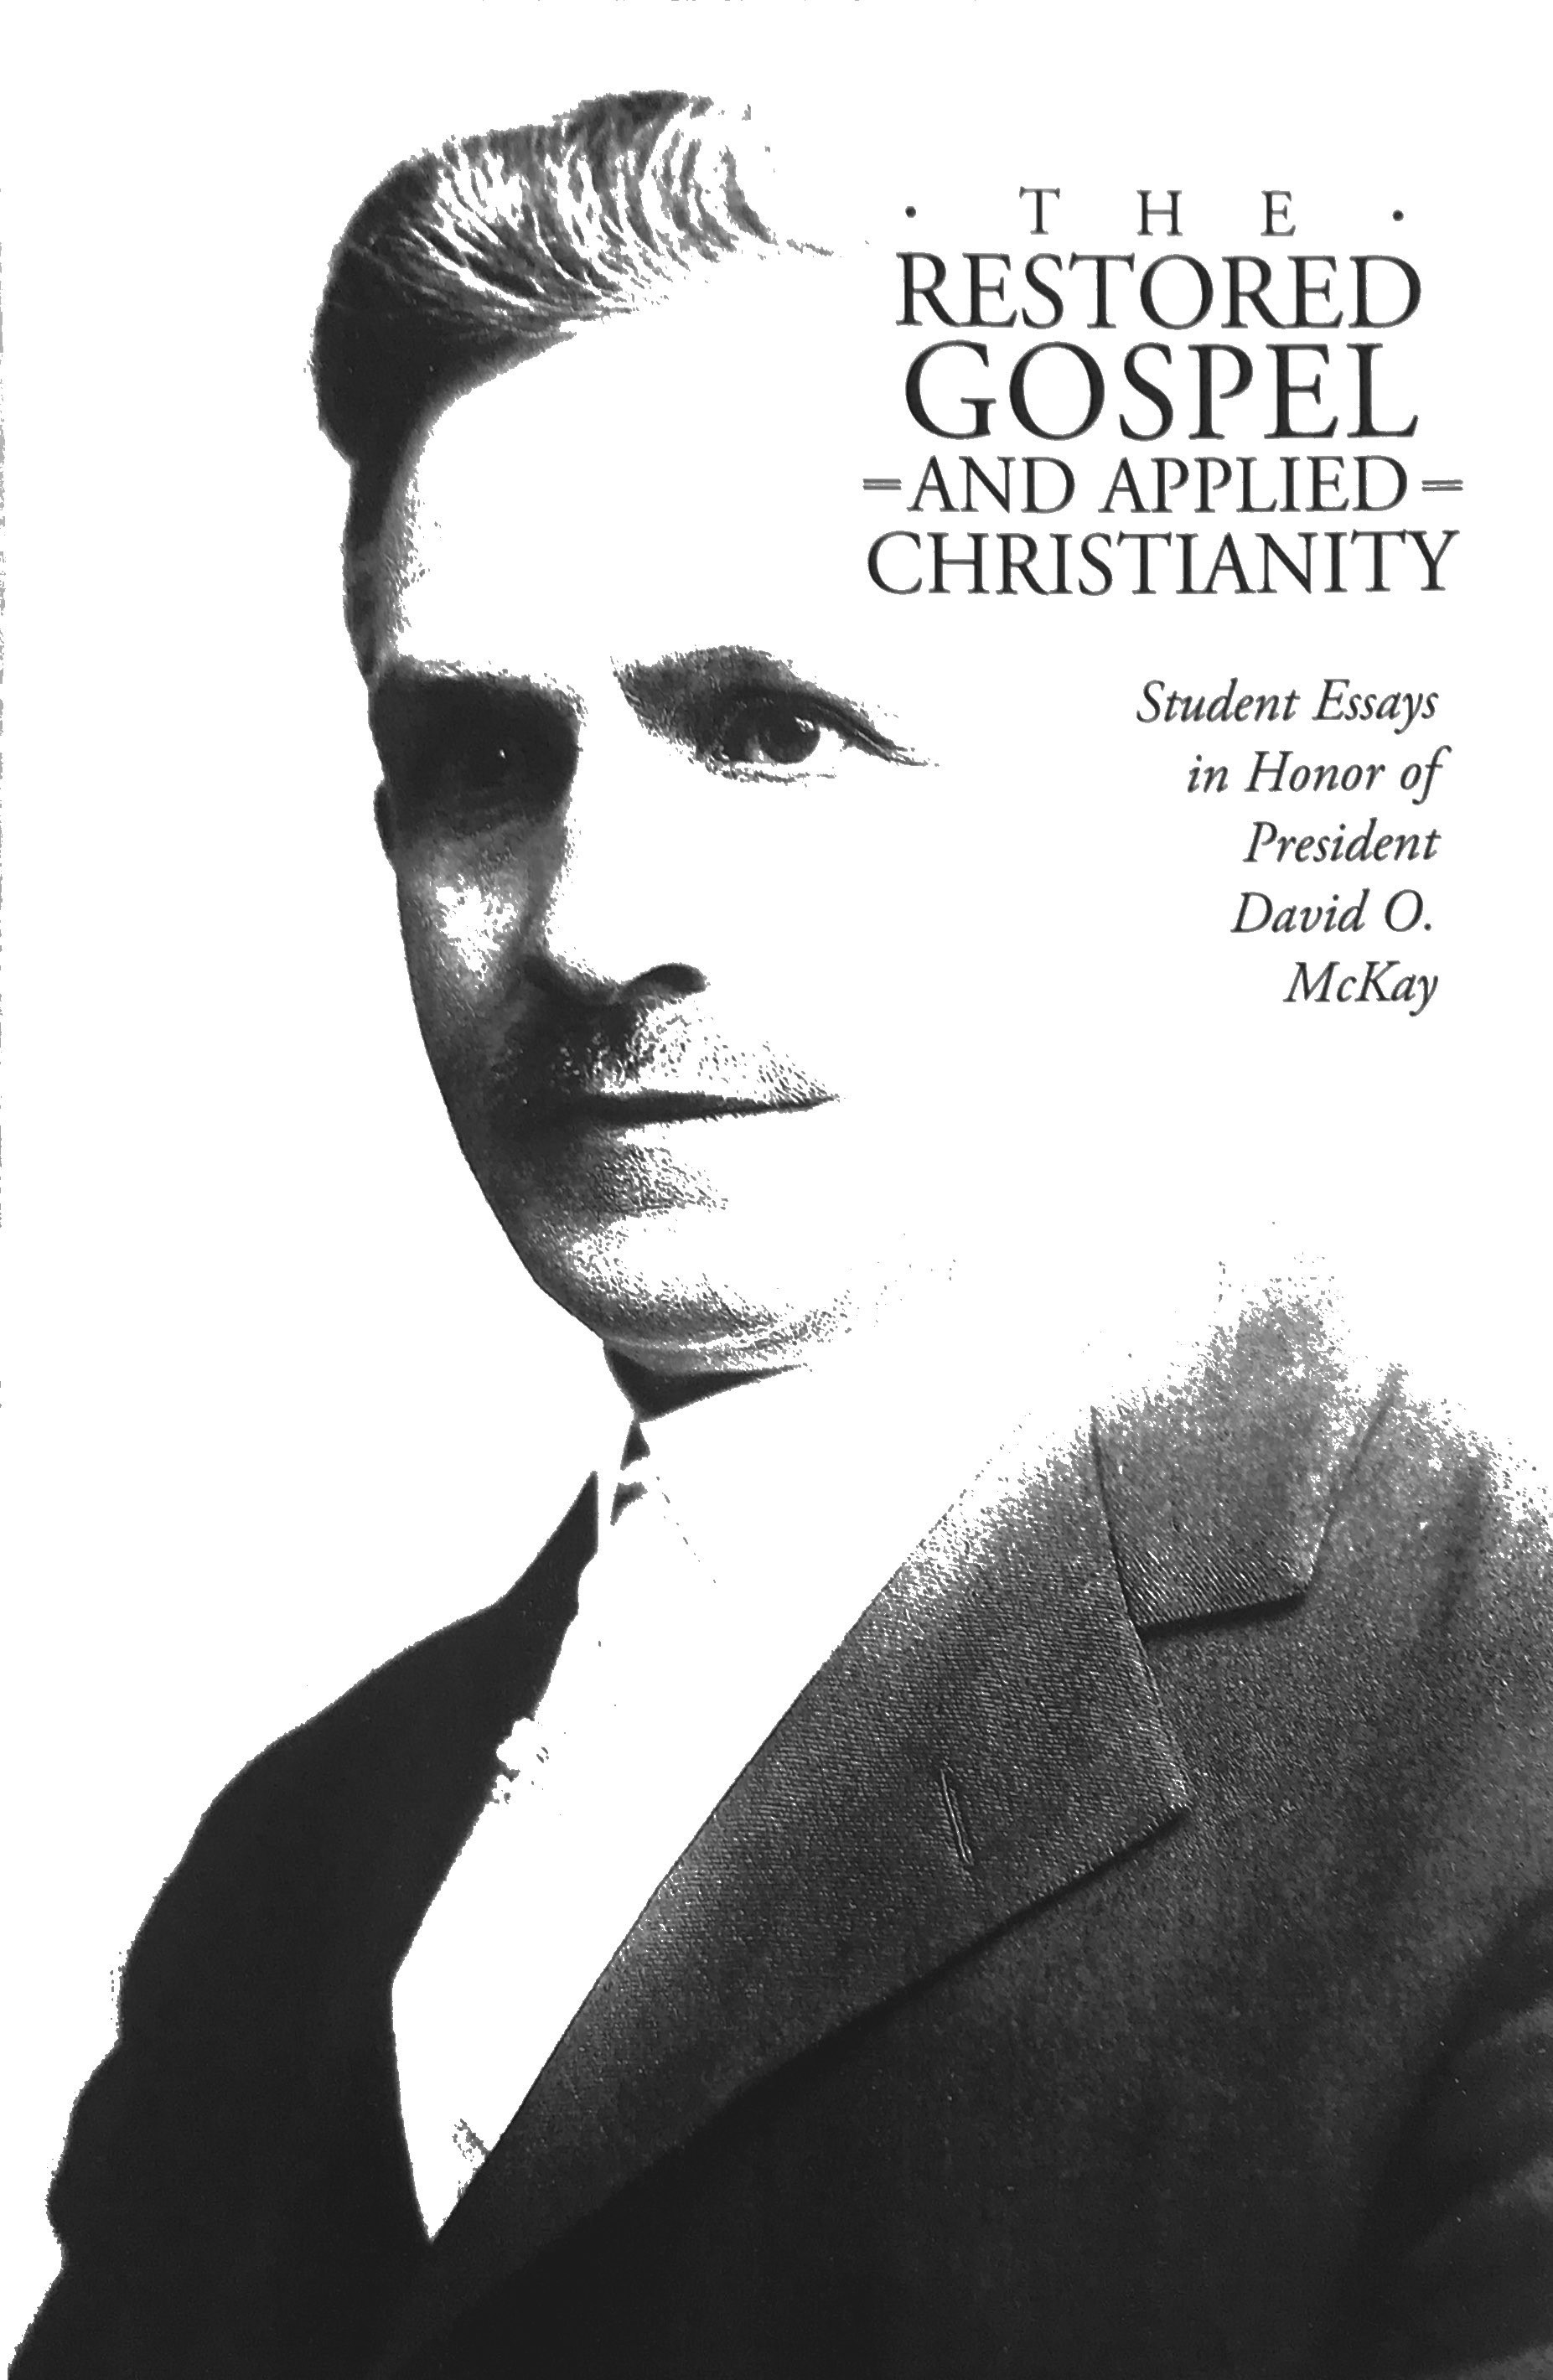 The Restored Gospel and Applied Christianity: Student Essays in Honor of President David O. McKay